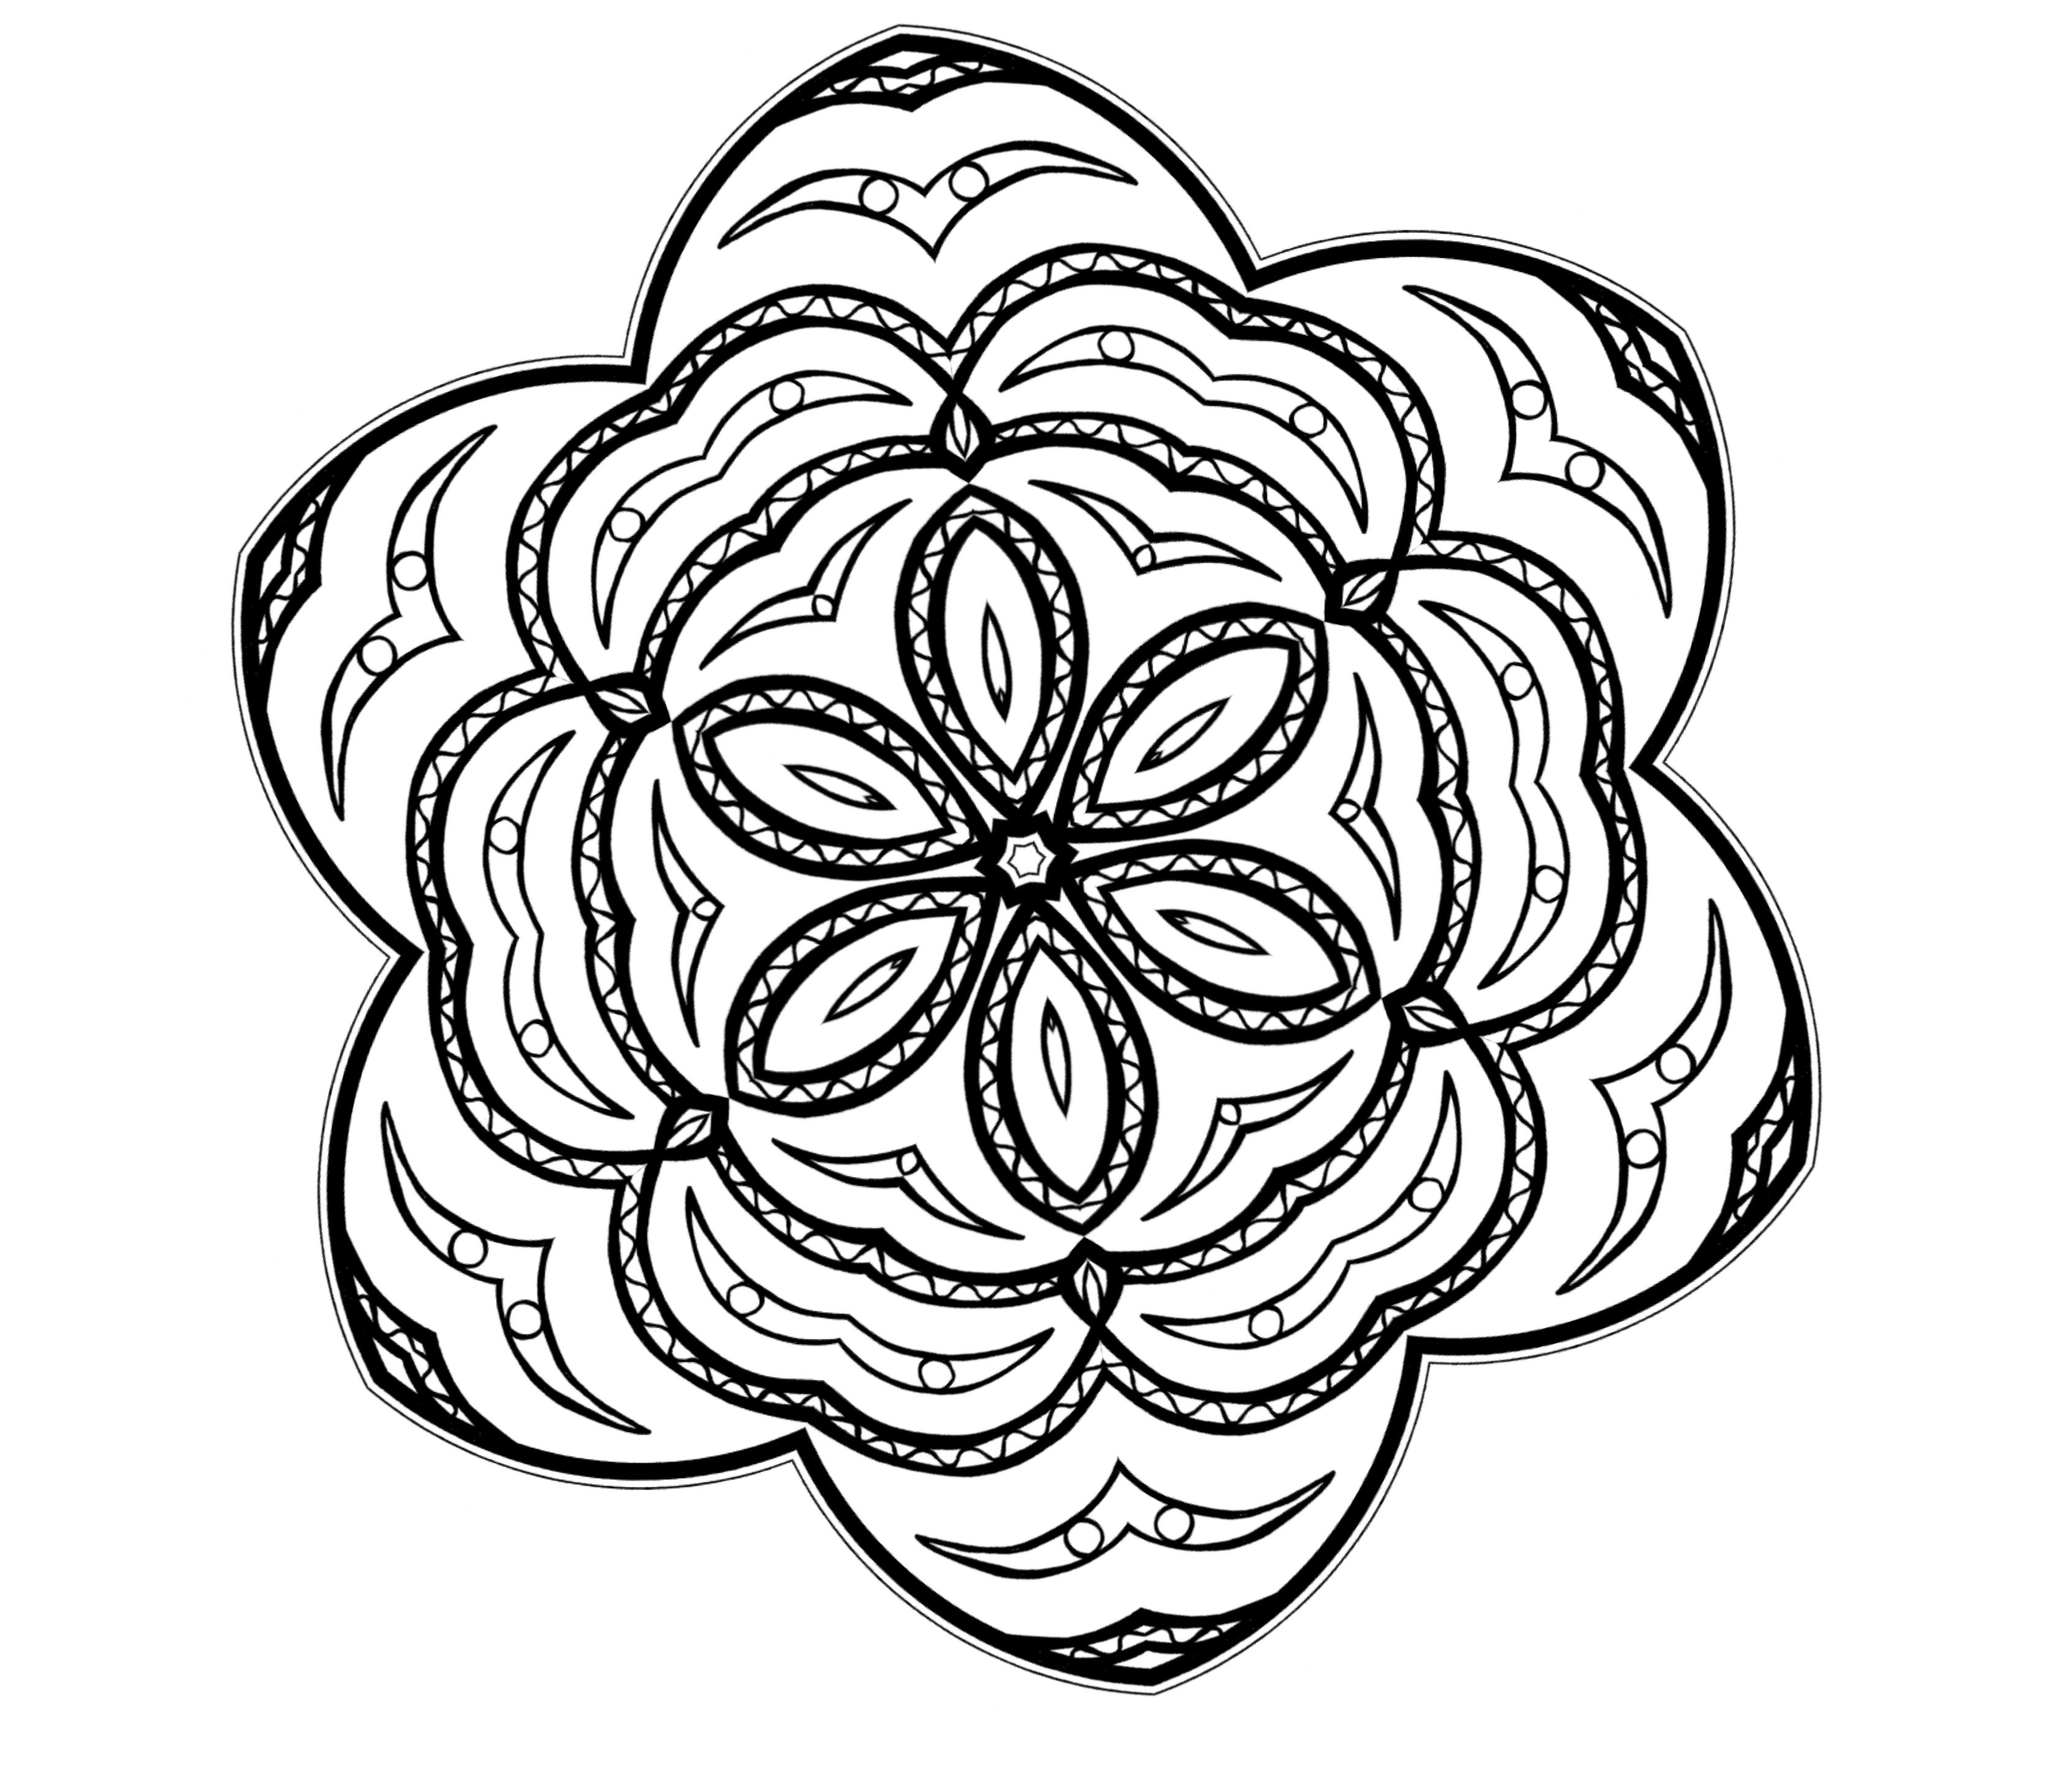 Abstract Coloring Pages | Free download on ClipArtMag